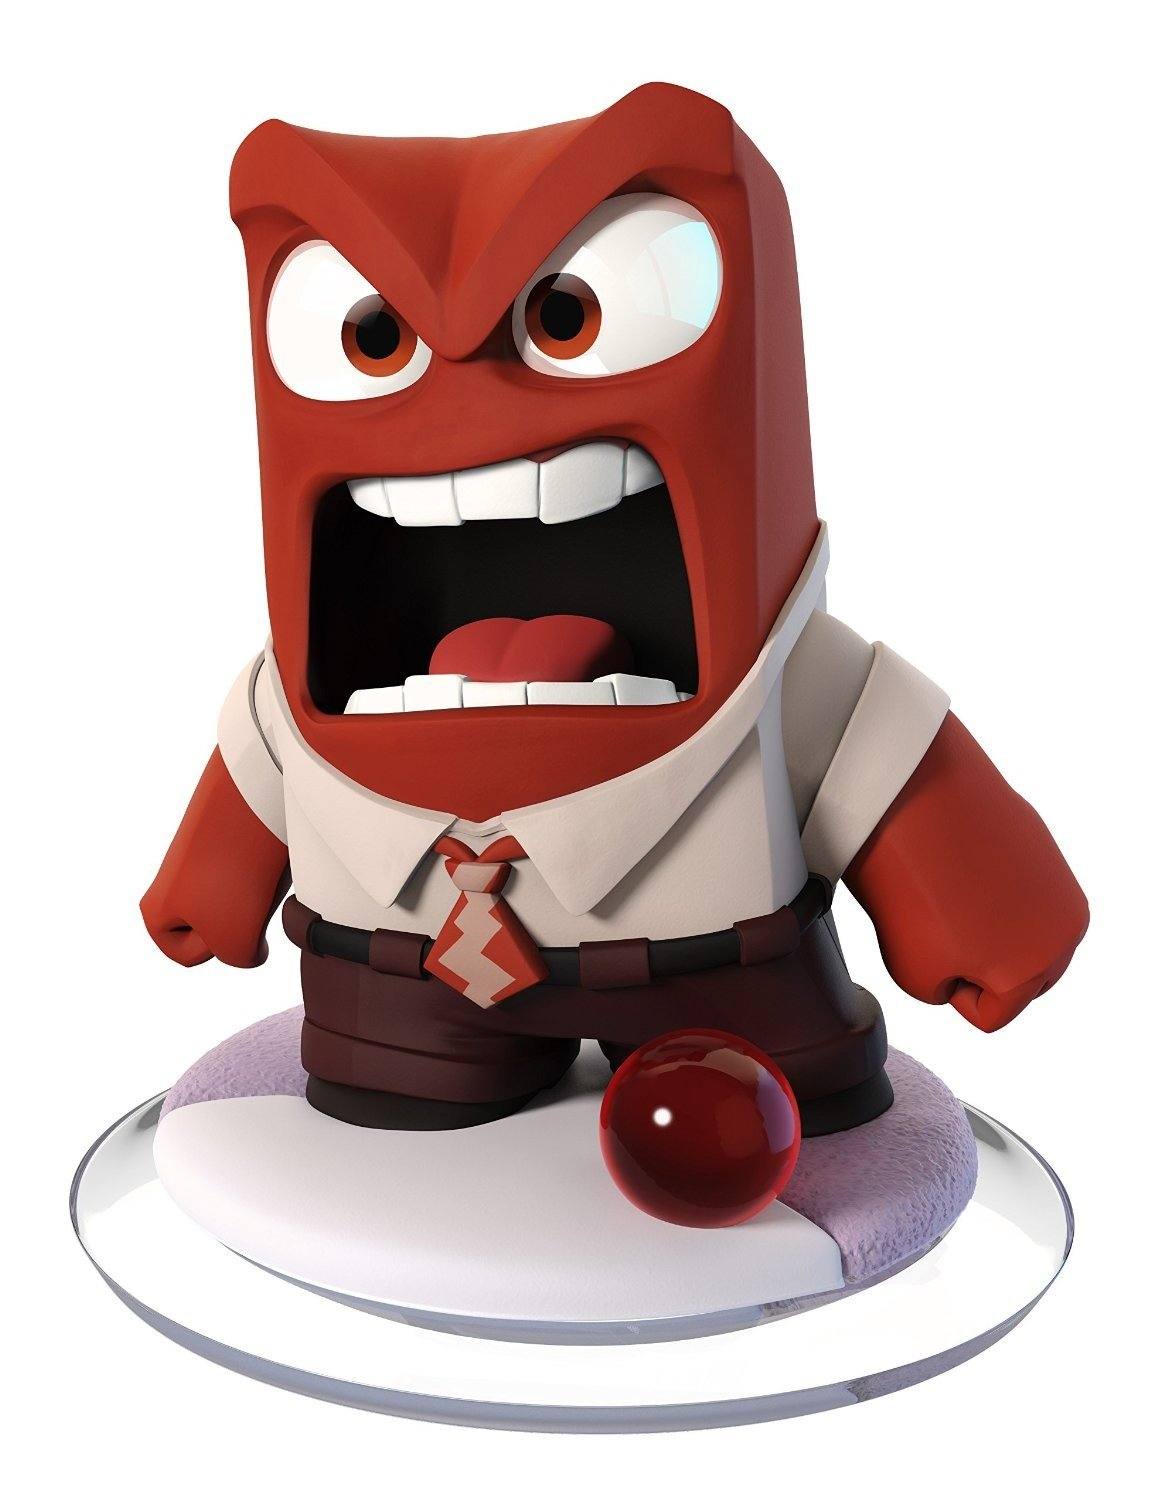 Disney Infinity 3.0 Edition: Inside Out Anger Figure (No Retail Package)